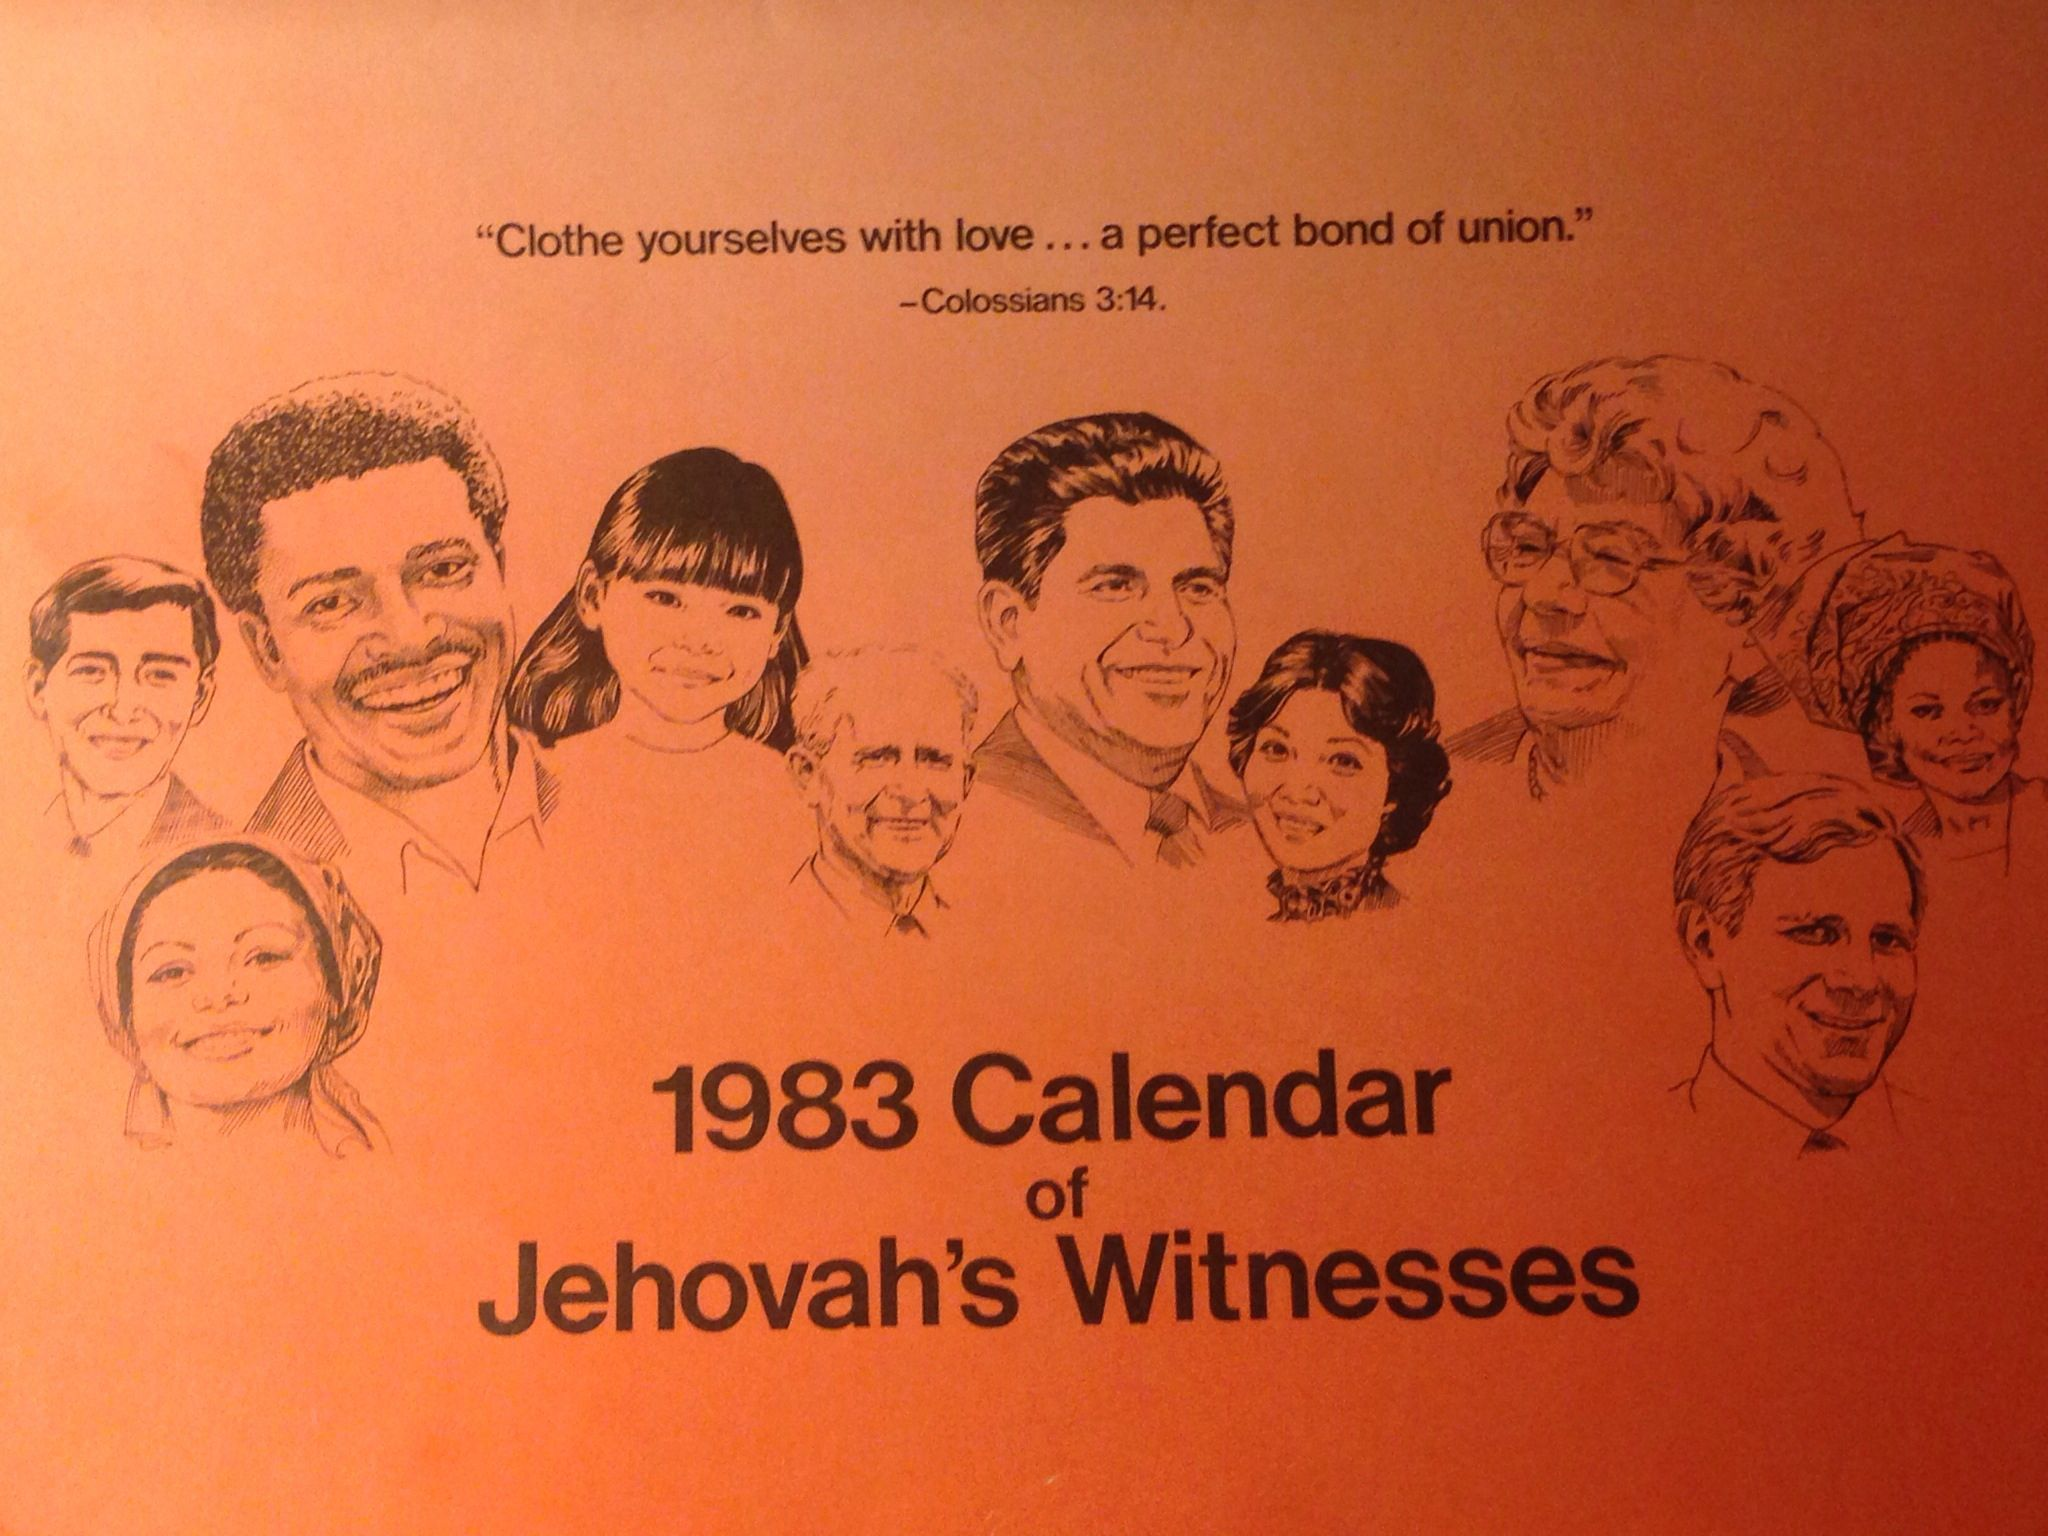 Jw Calendar 1983 With Images Jehovah S Witnesses Calendar